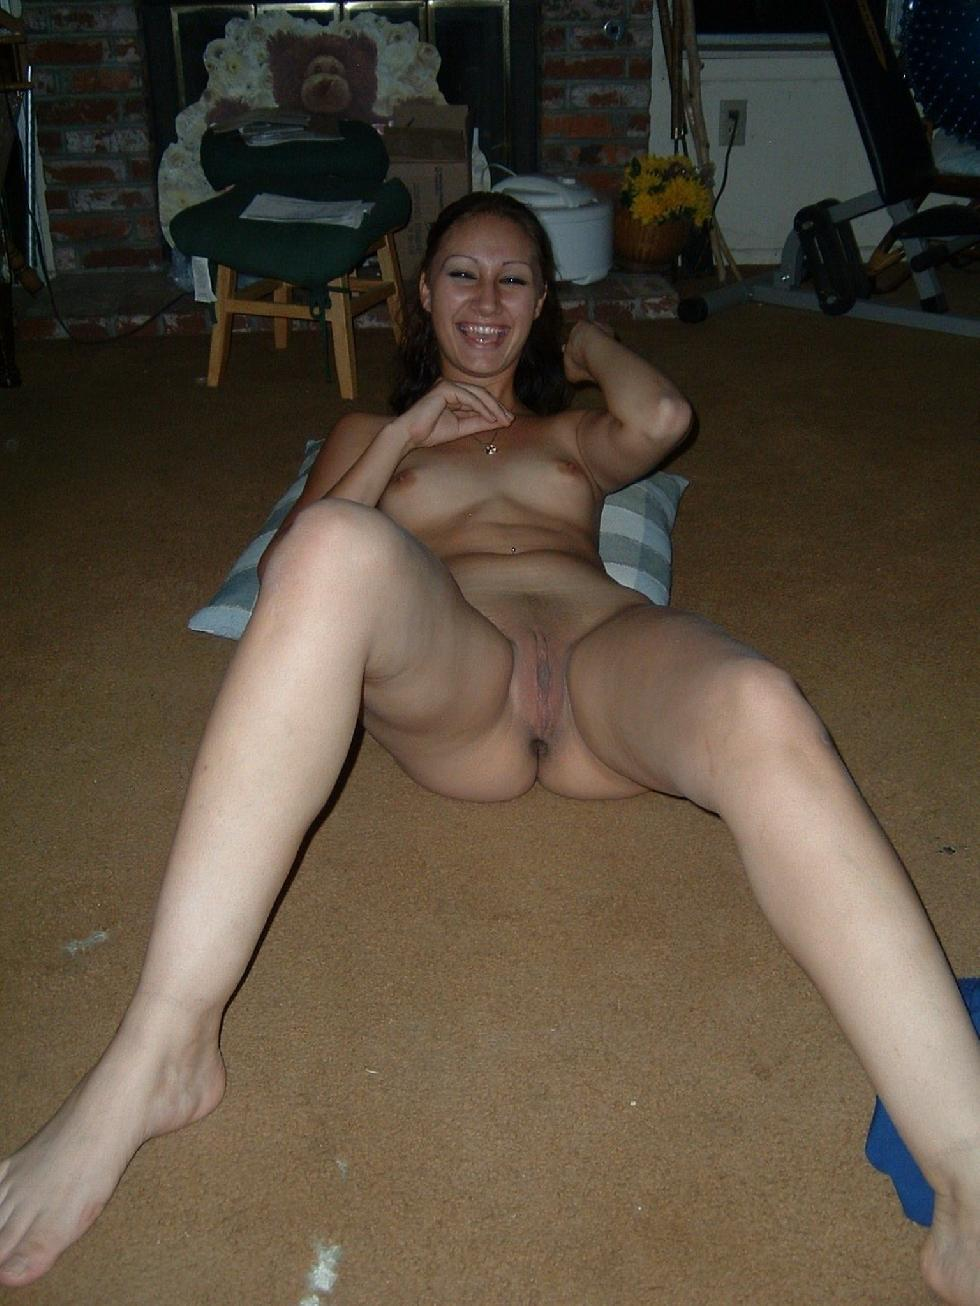 Sexy young Latina on the floor - Leila - 7